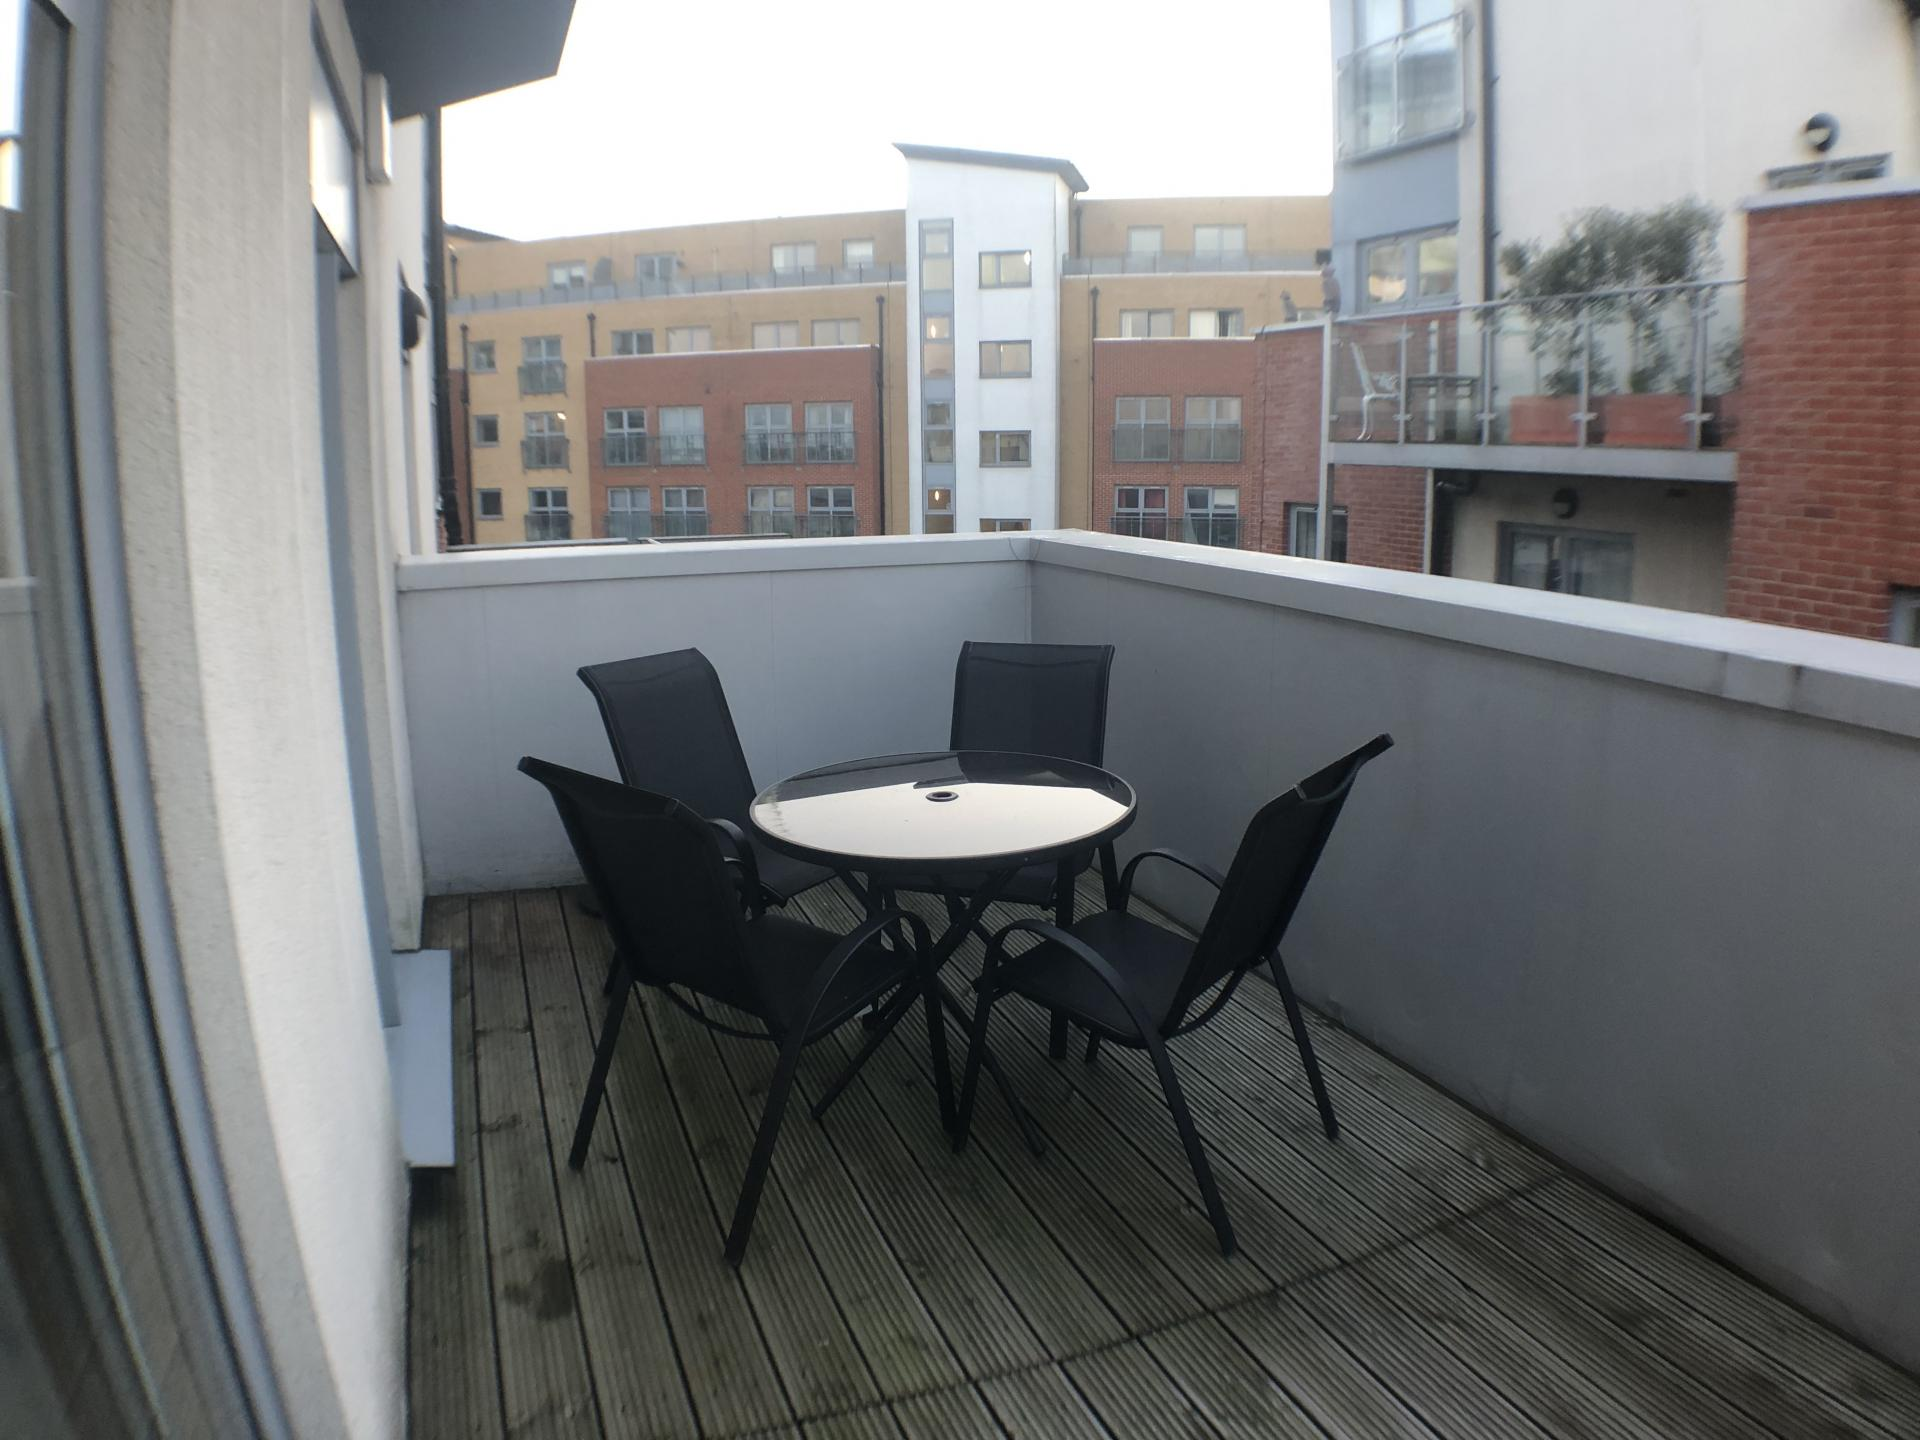 Balcony at Mulberry Lodge Apartments, Centre, St Albans